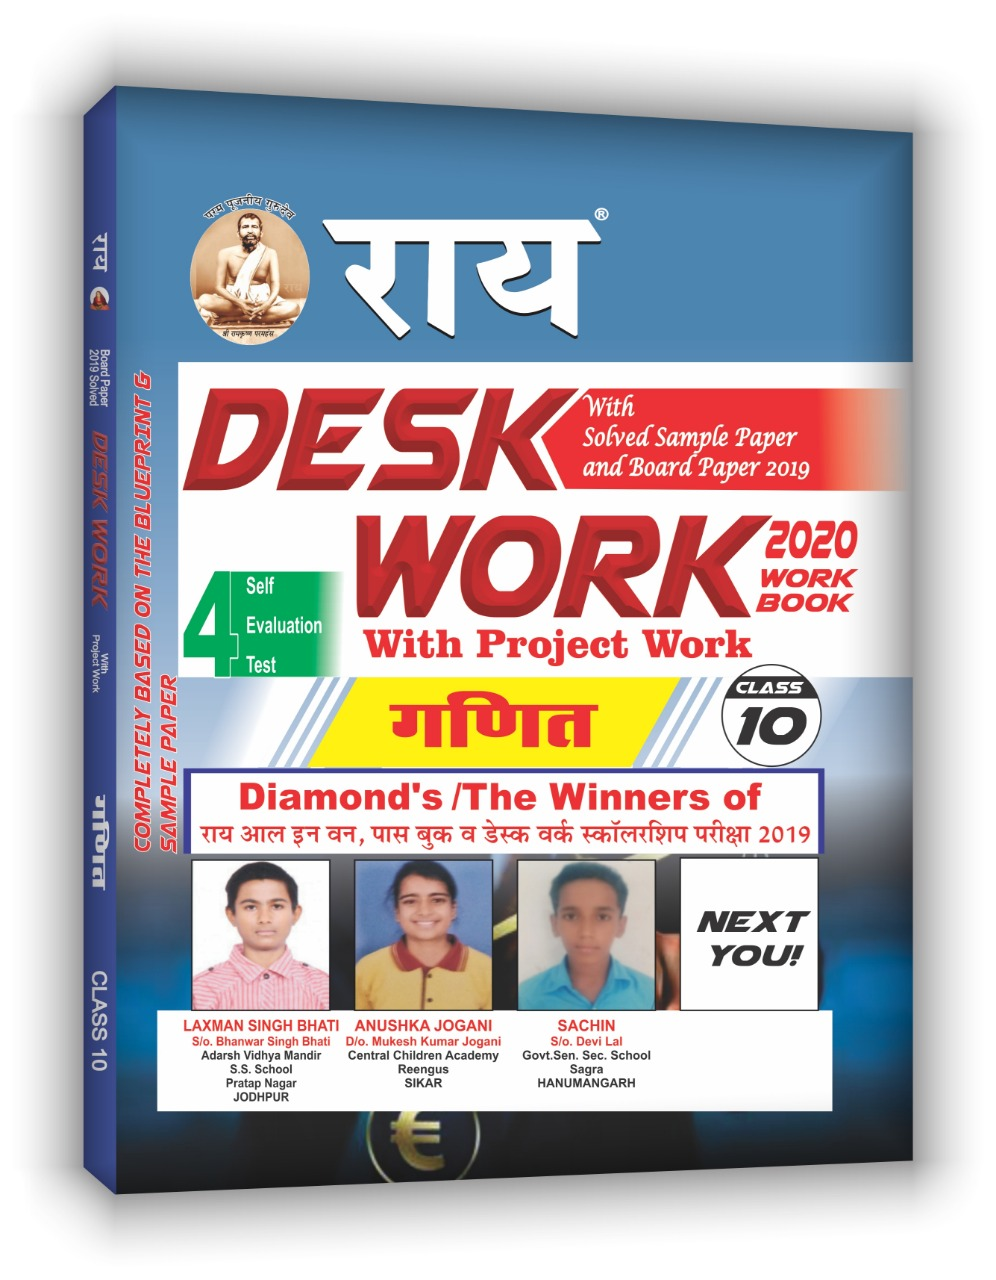 Rai Desk Work 2020 Ganit Class 10th Hindi Medium with free Scholarship Exam Form( Blue Print , Board Paper 2019 Solved ,1 Board Sample Paper+ 8 Model Papers +4 Self Evaluation Papers )